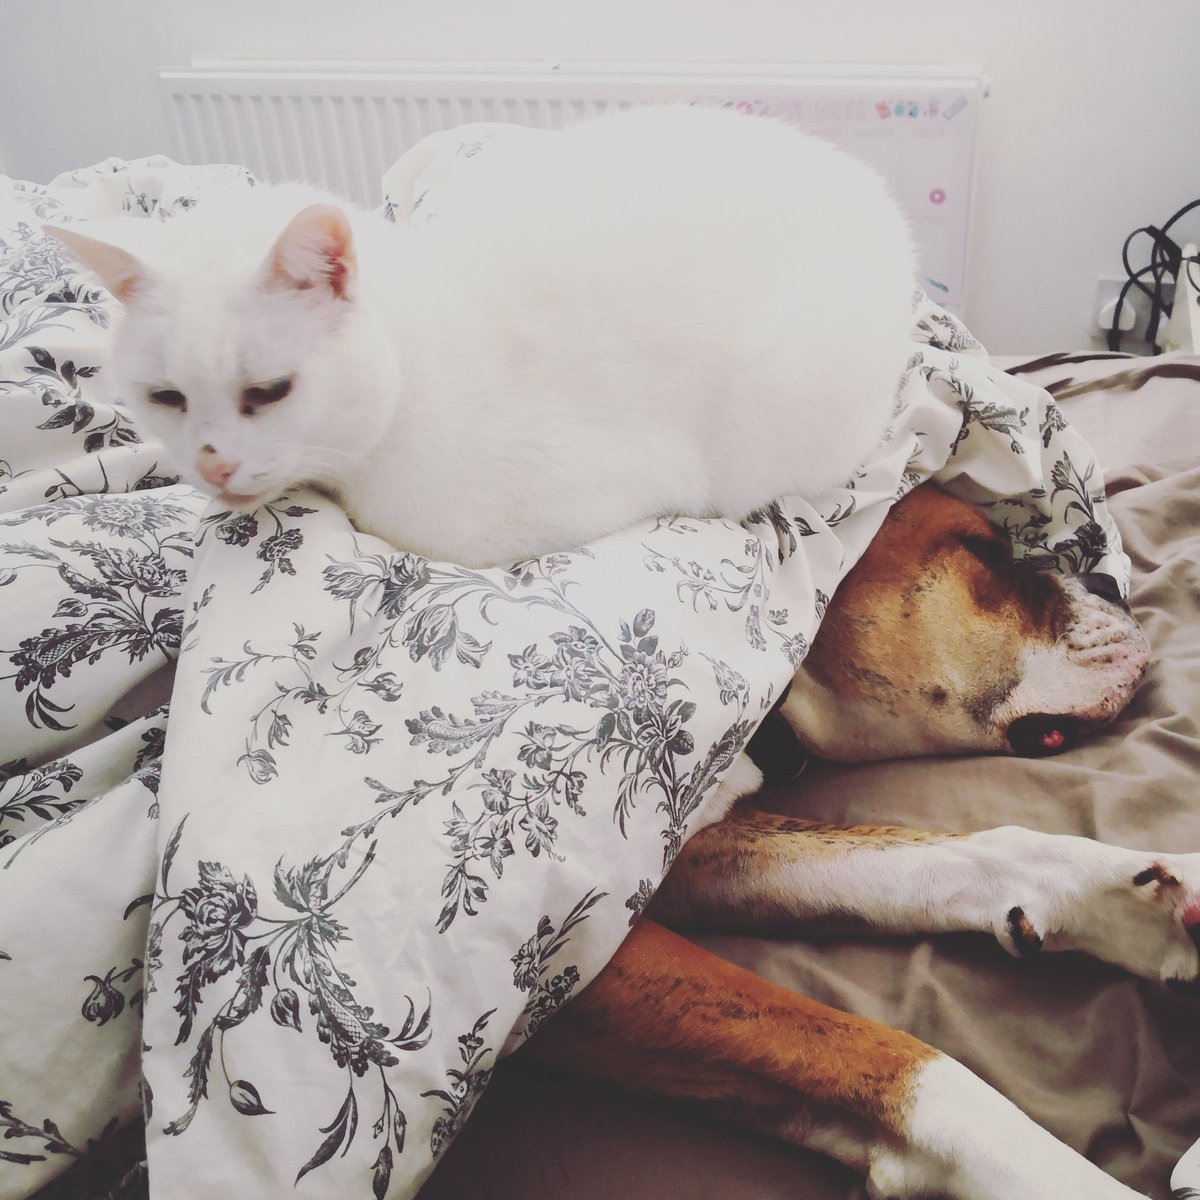 @LearNonsense Chester thinks Buster is a comfortable cushion . Happy birthday to your daughter 🎈🎈🎈